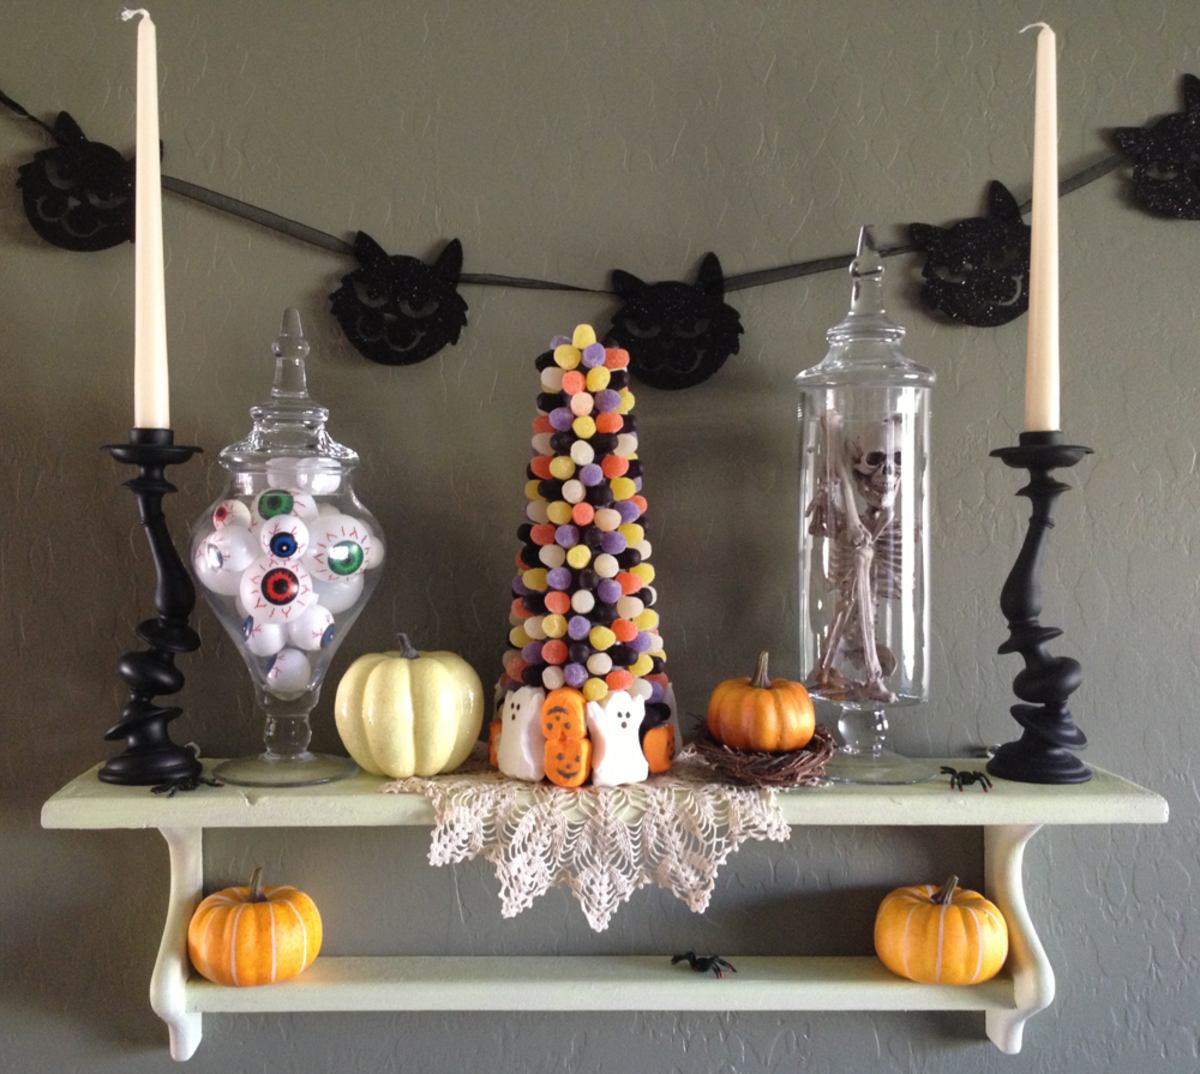 Last Minute Halloween Décor - Ideas for Simple Halloween Decorations